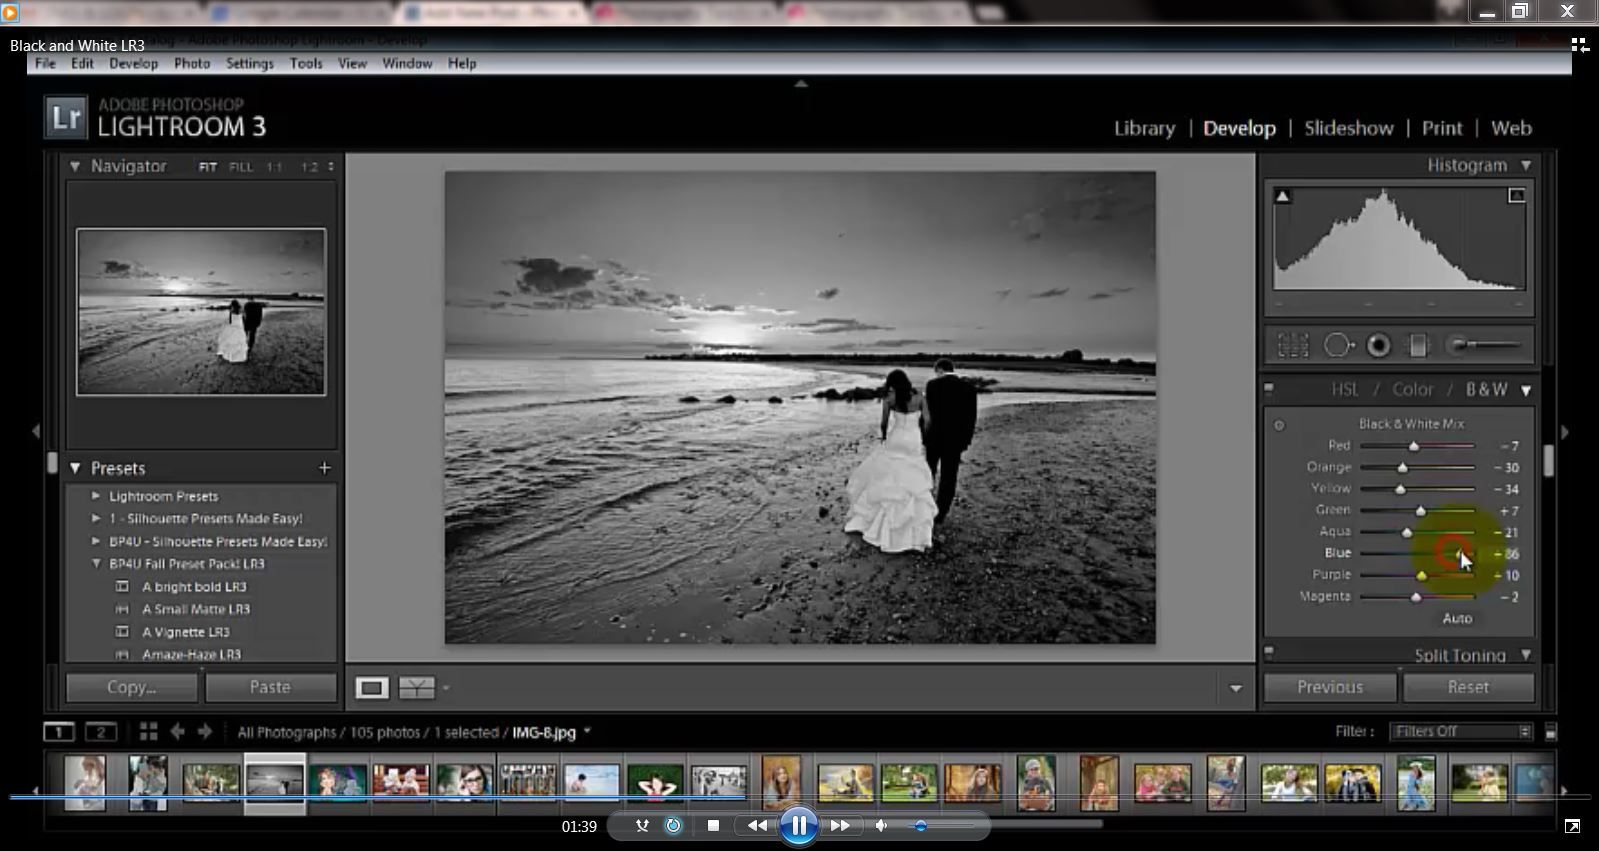 New on the blog! Learn how to use Black and White in Lightroom!